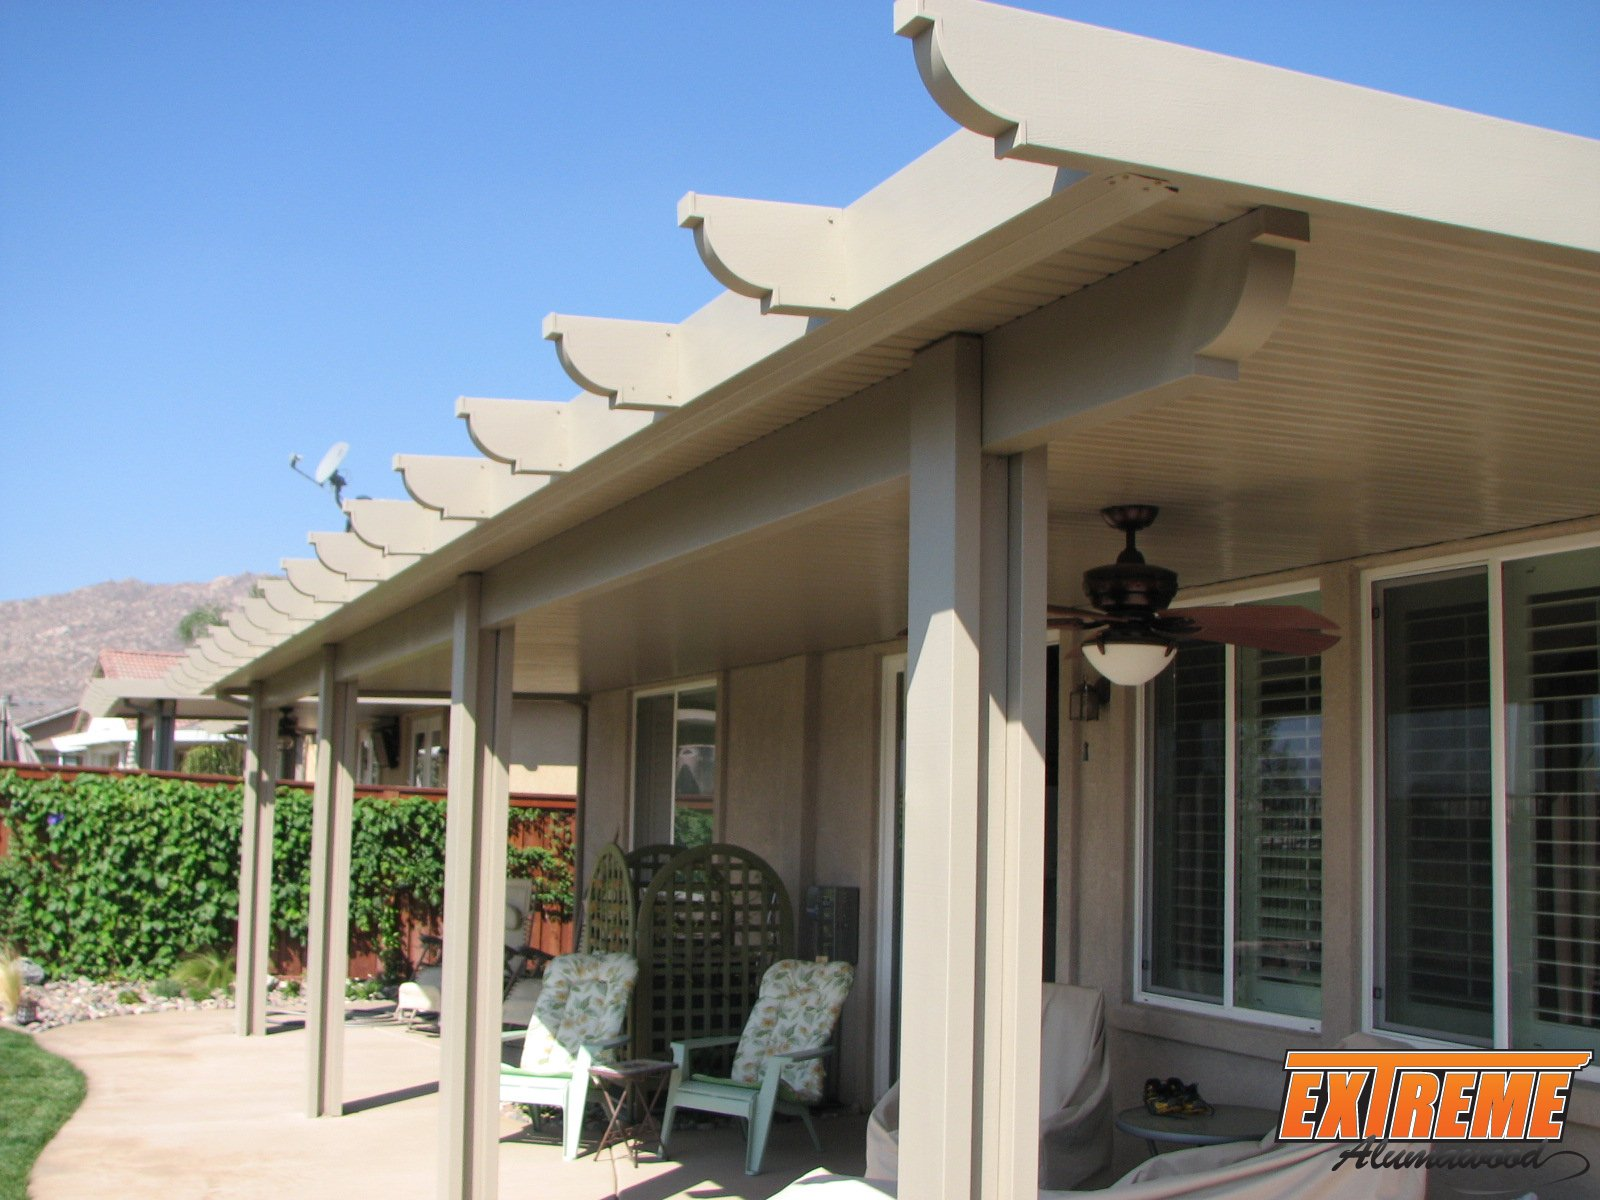 Alumatech Patio Cover Installers In Palm Springs Extreme